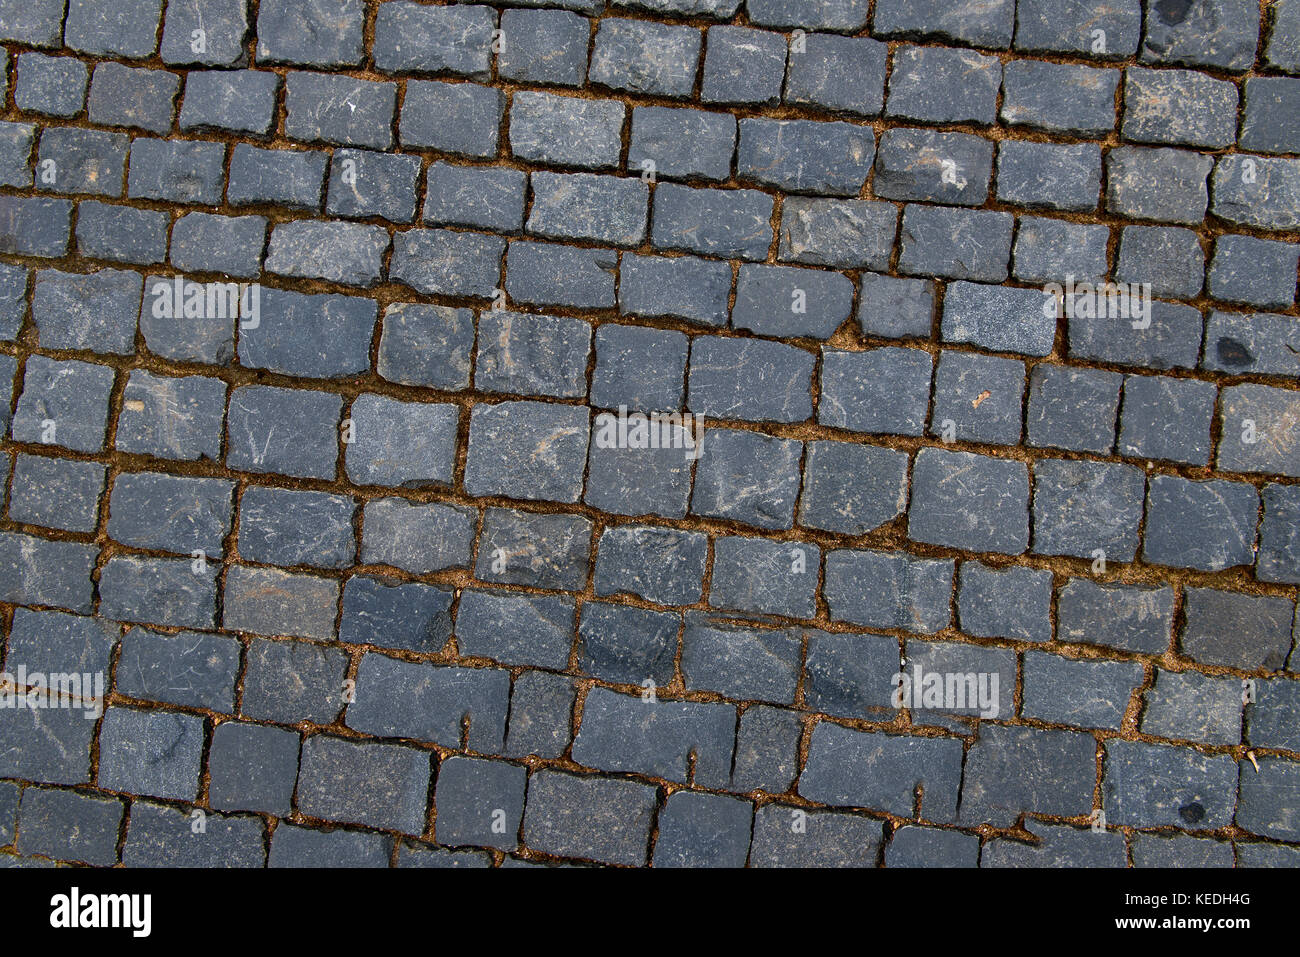 Exterior brick footpath texture background stock photos for Exterior background